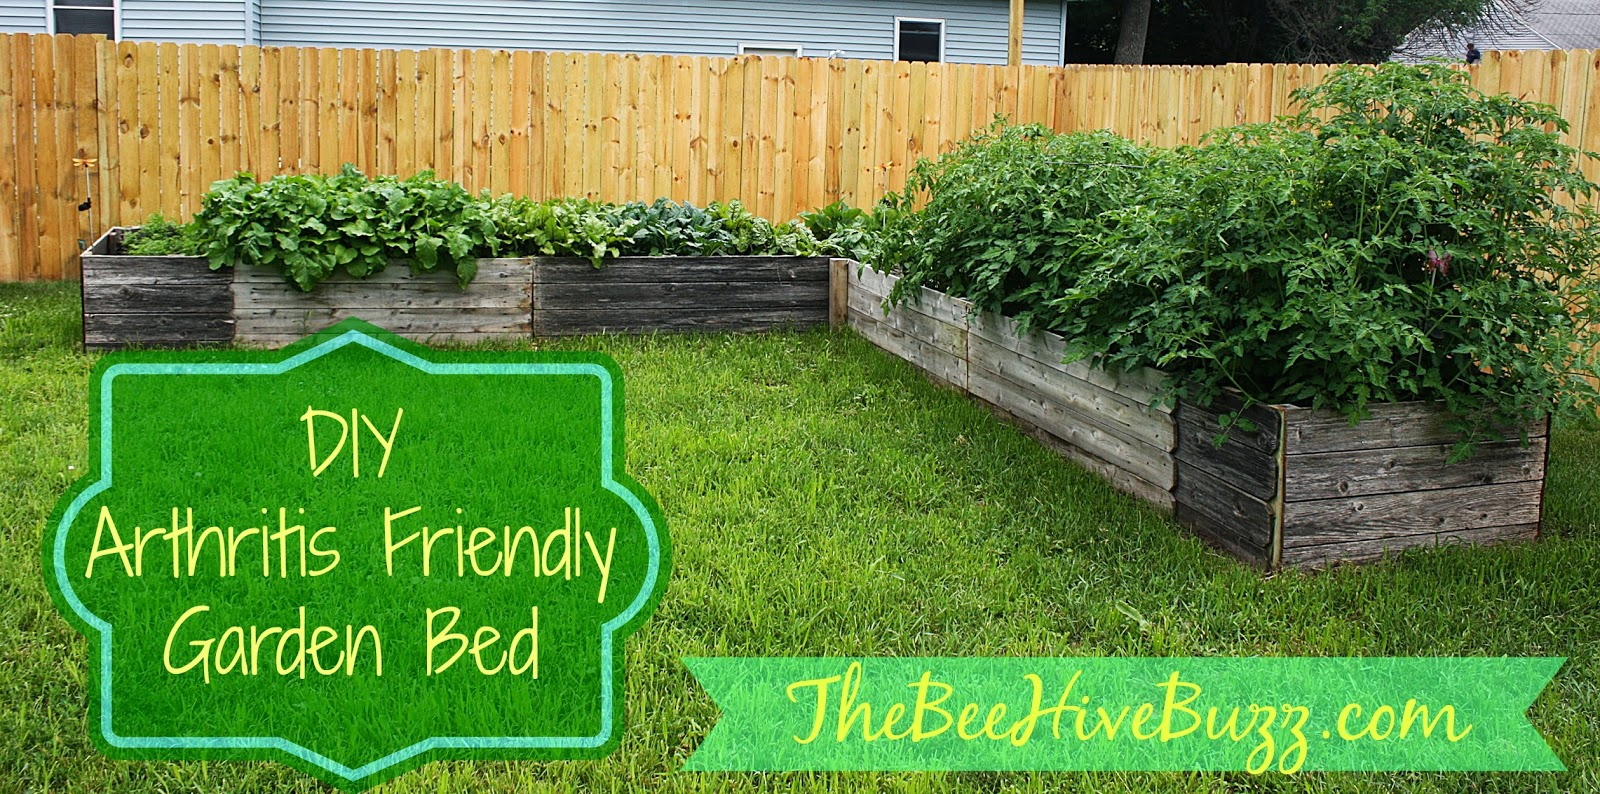 The bee hive buzz diy arthritis friendly raised garden bed for the walls of my garden box we used re purposed privacy fence panels the retirement home behind my parents house was putting up a new privacy fence and baanklon Gallery